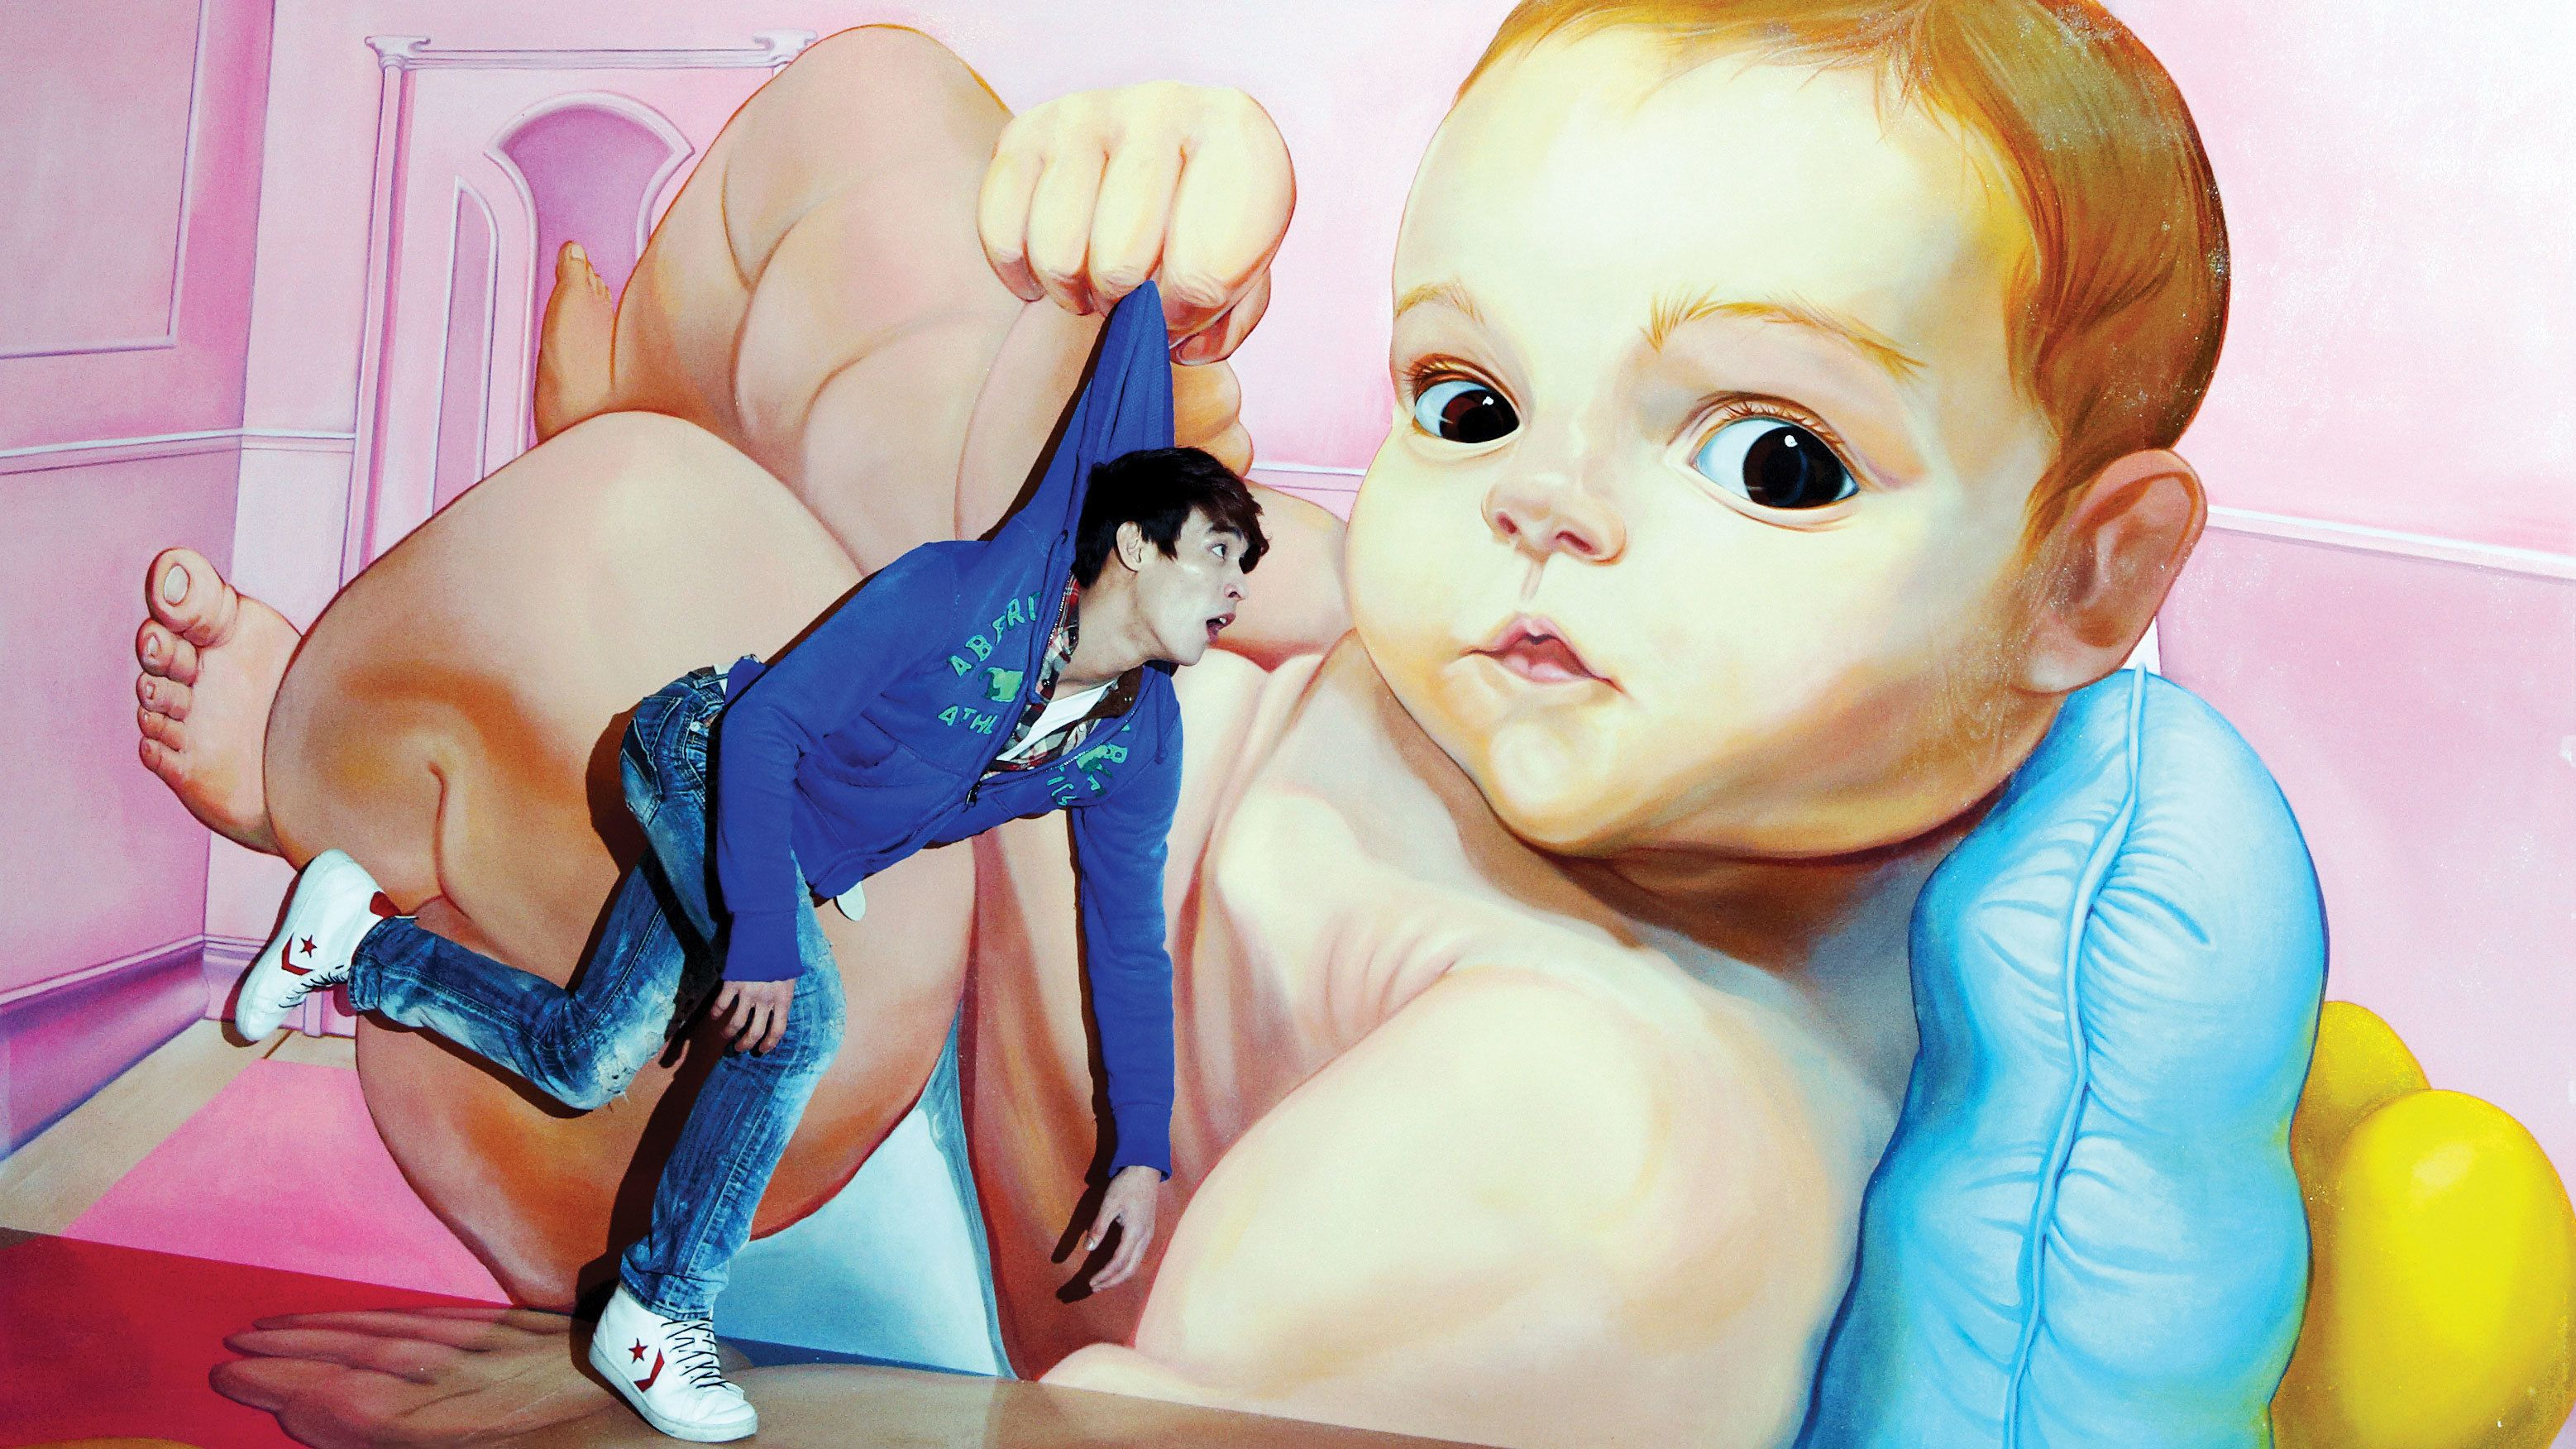 Man posing as being picked up by large painting of baby at Trick Eye Museum in Singapore